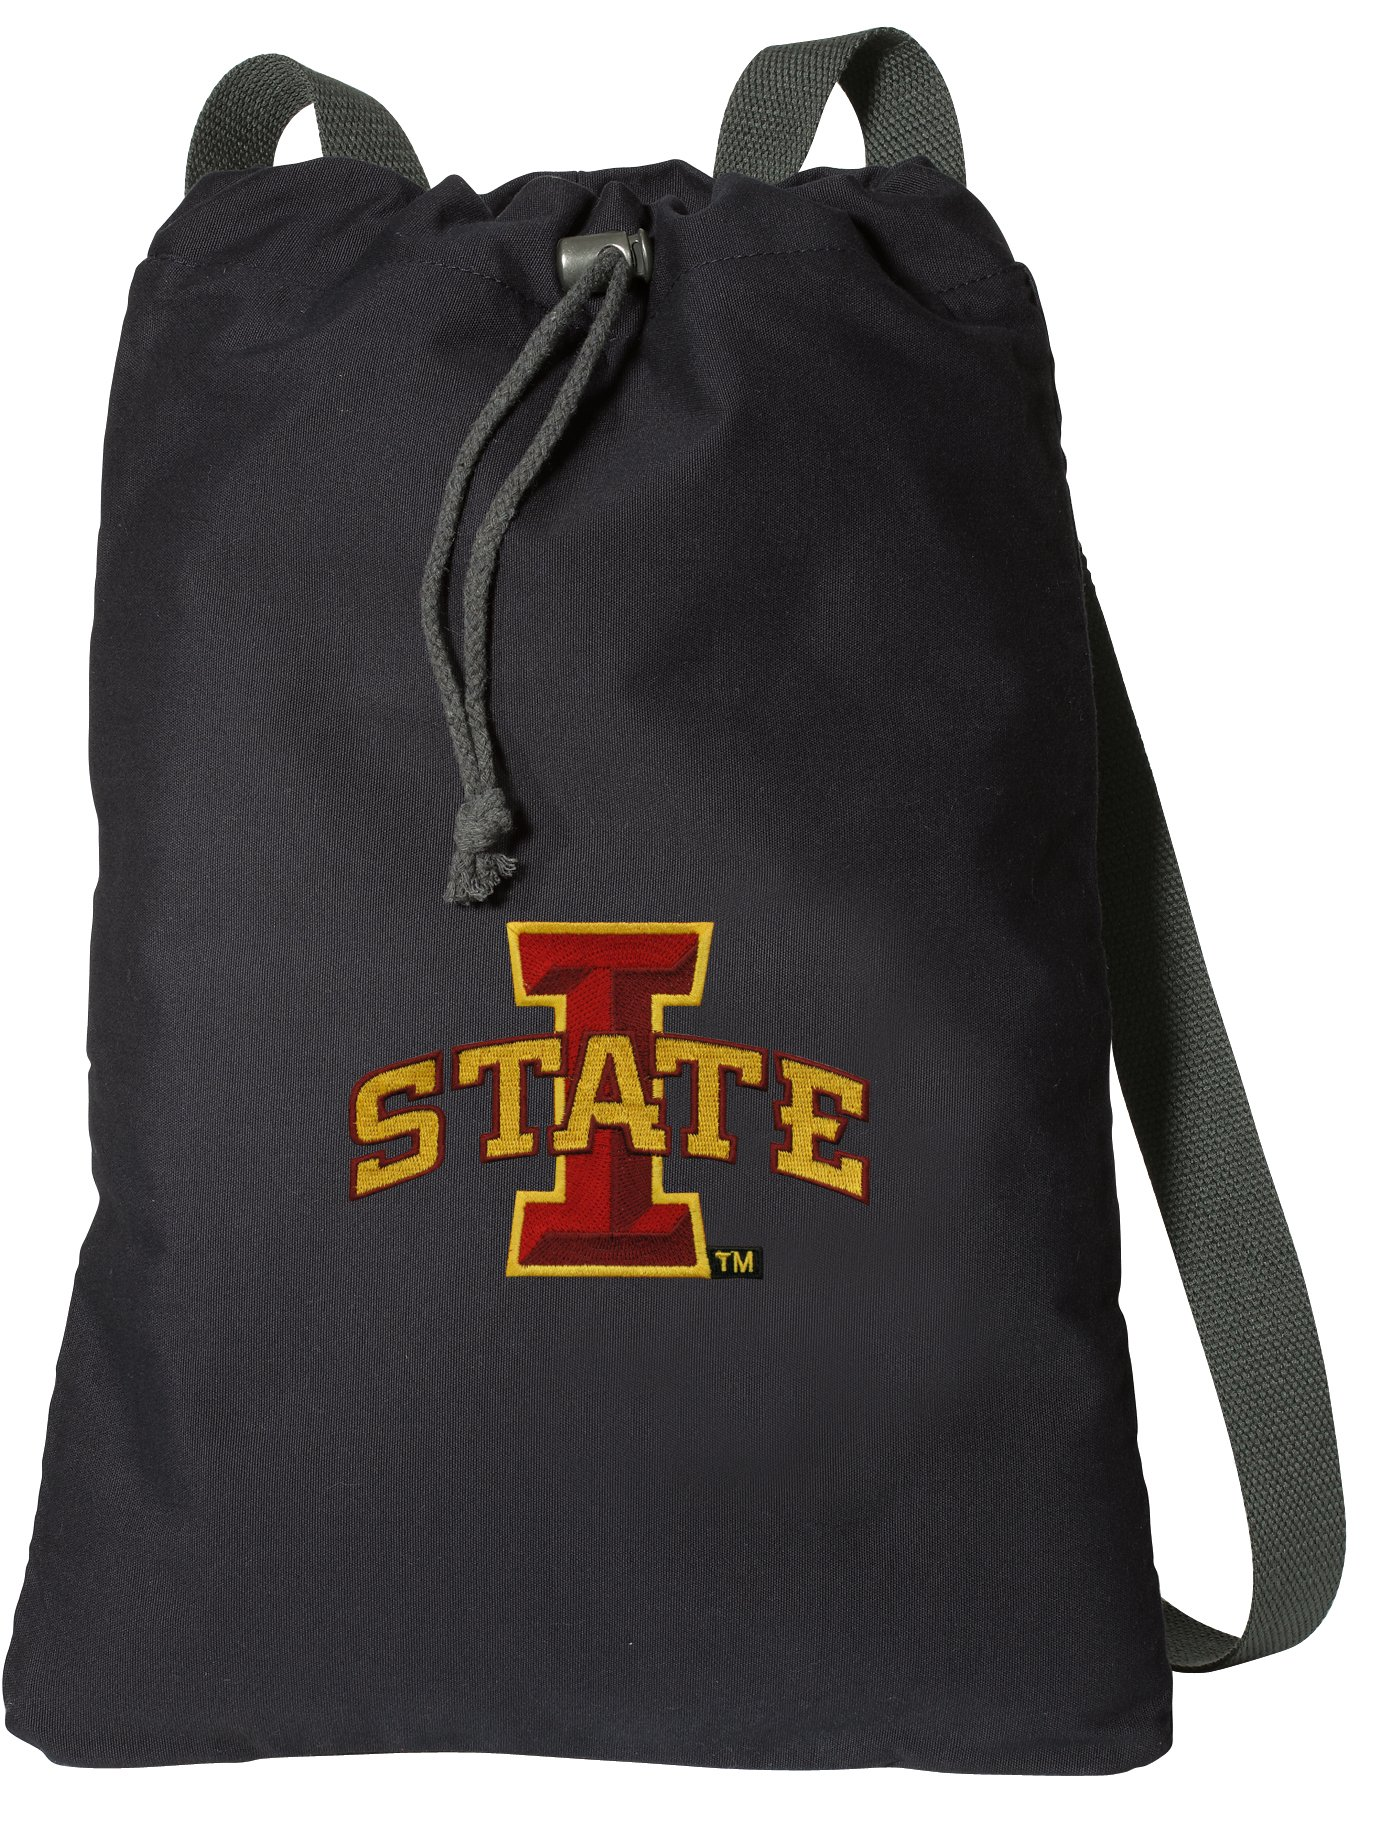 Broad Bay Iowa State Drawstring Backpack Rich Canvas ISU Cyclones Cinch Bag